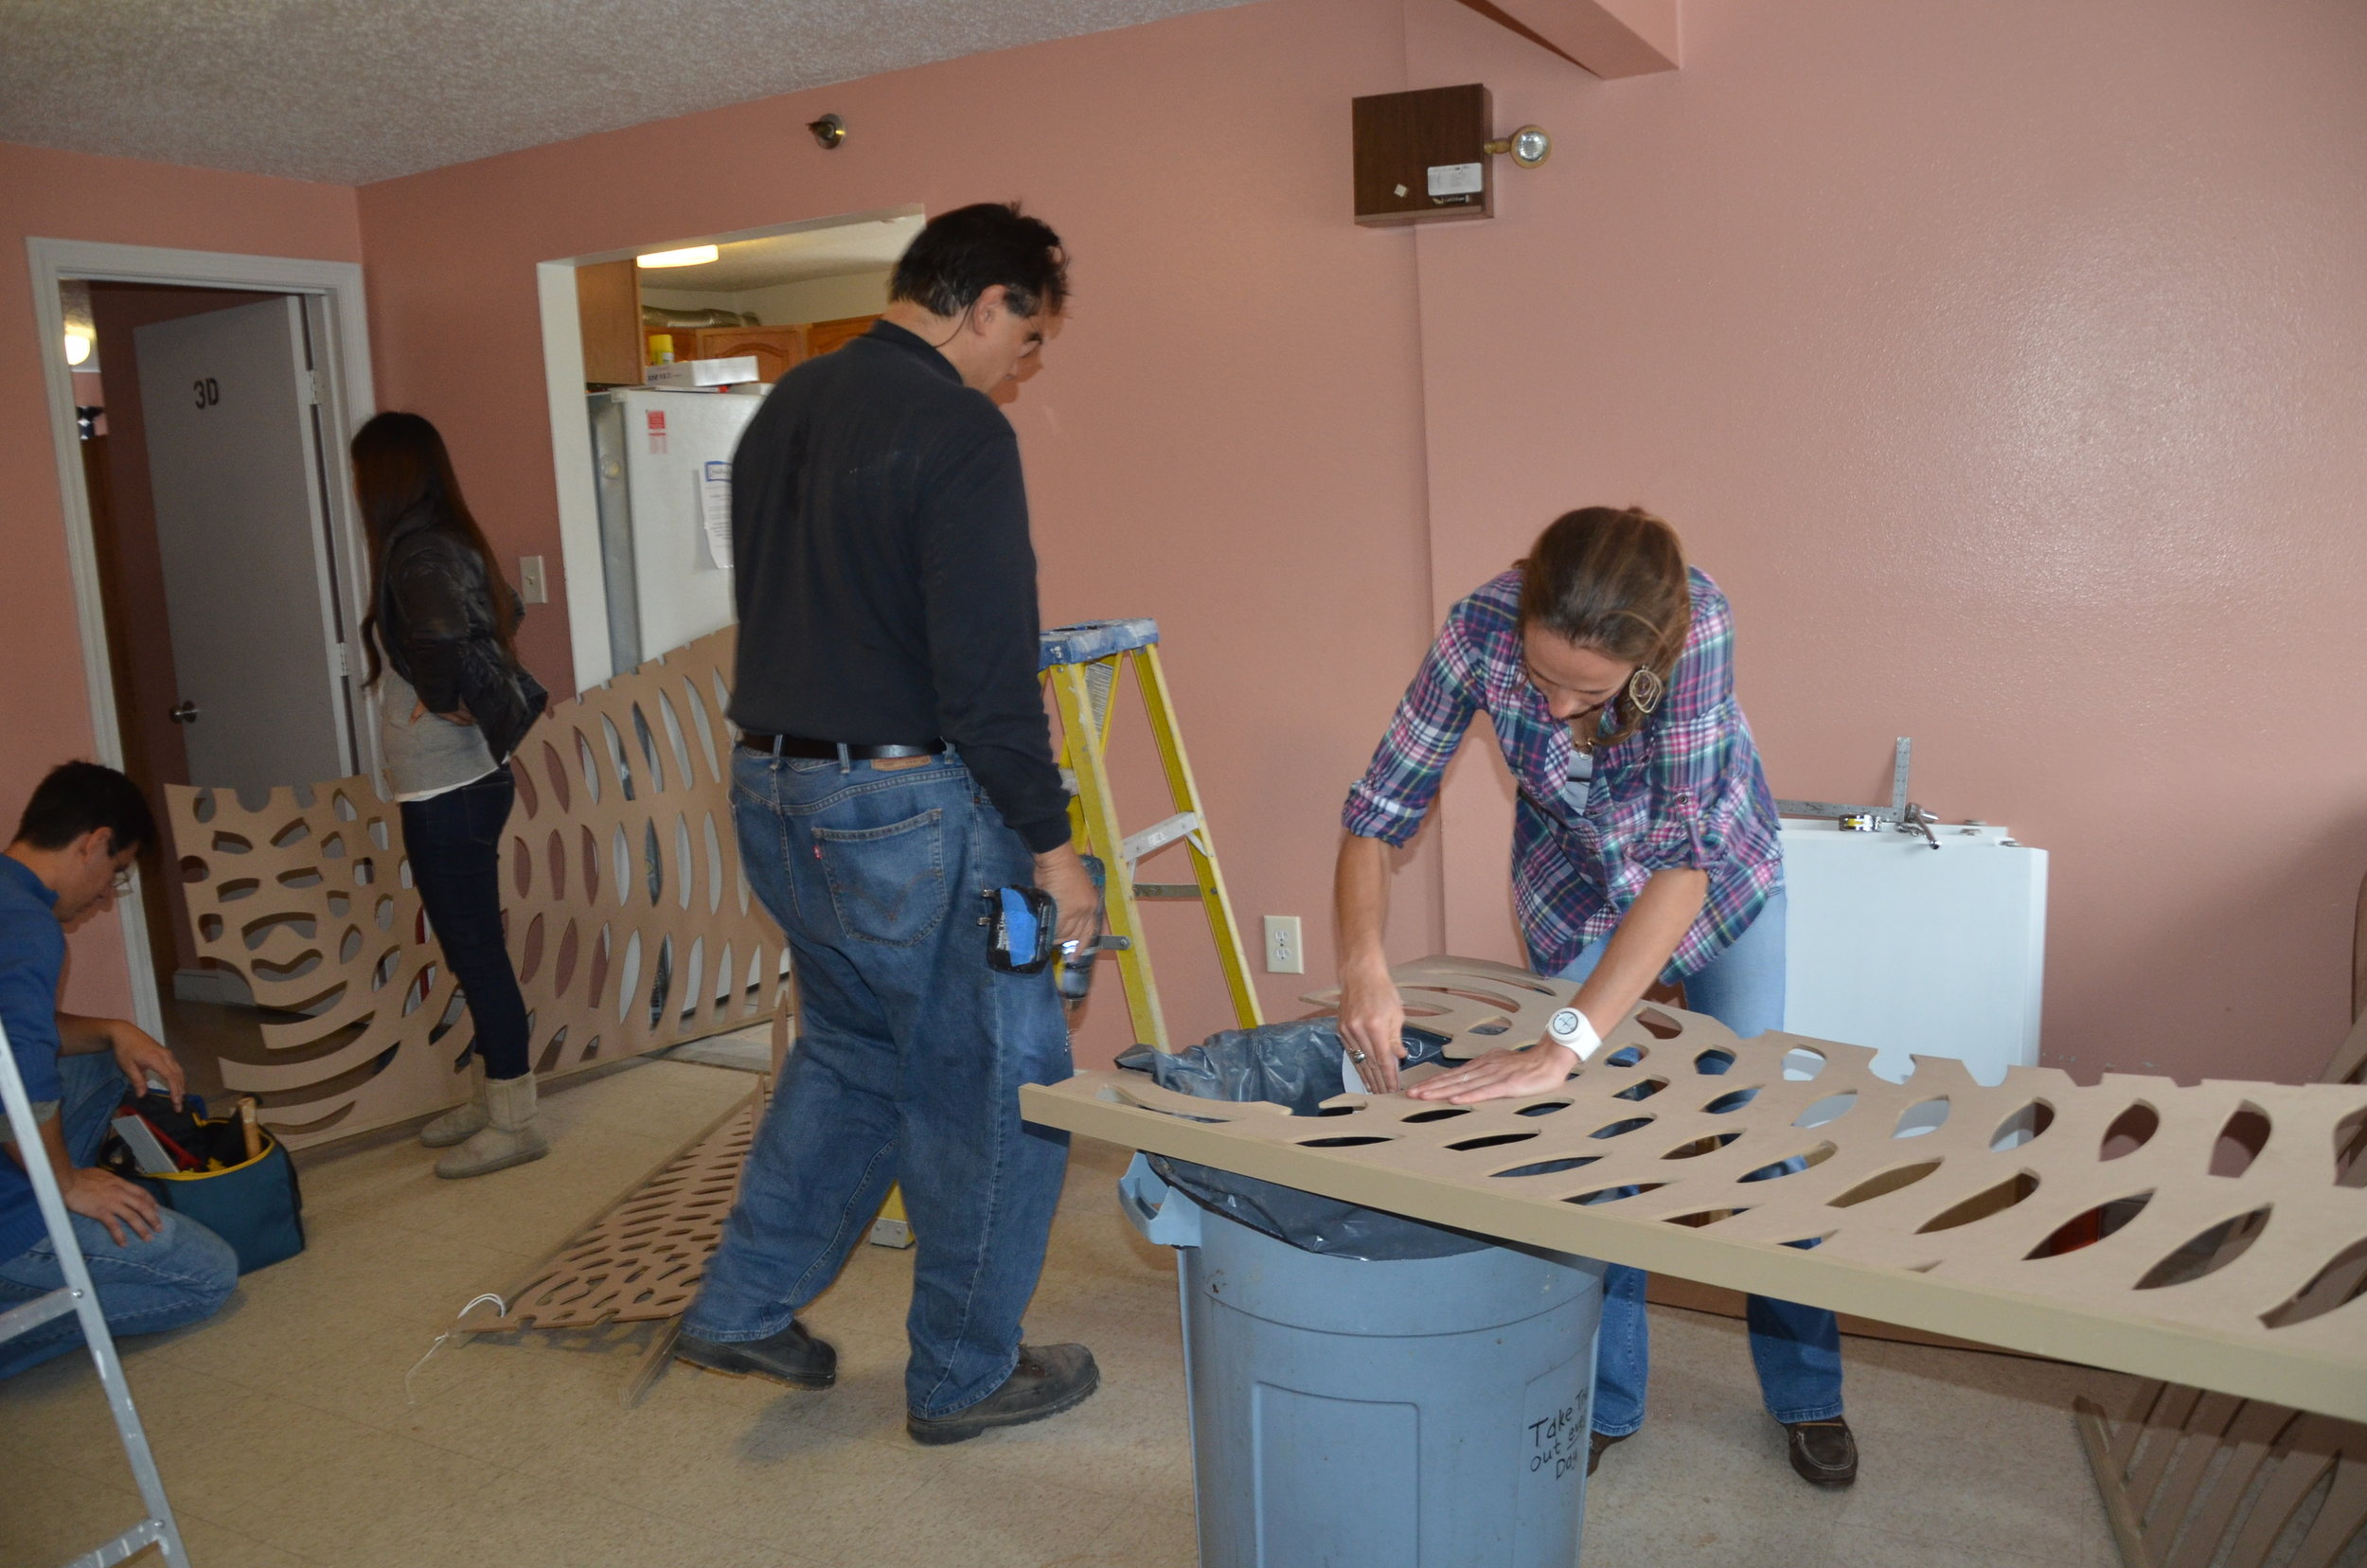 WOONSOCKET FAMILY SHELTER  INSTALLATION